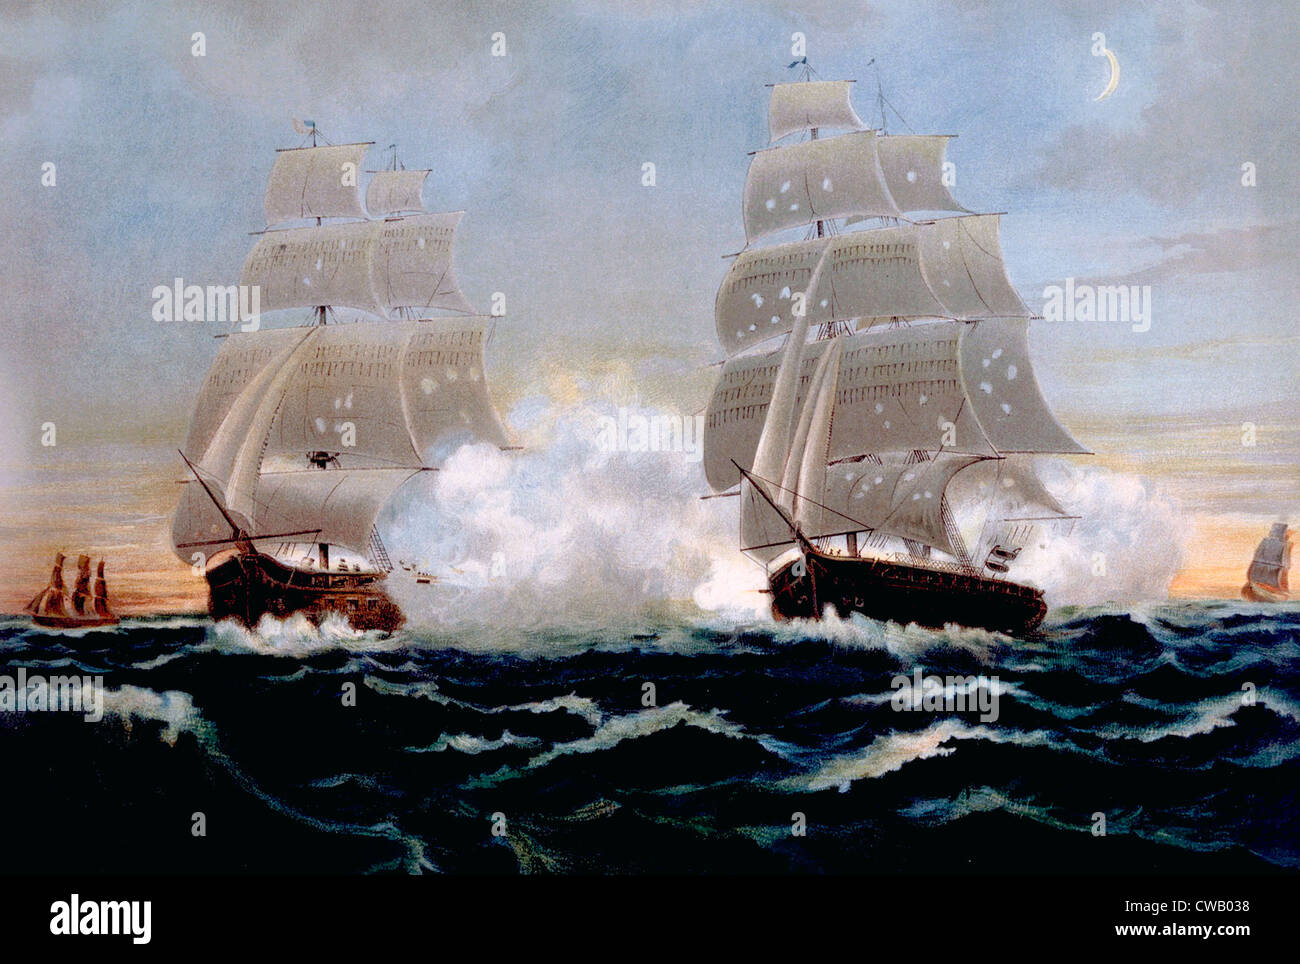 The War of 1812, U.S. and British frigates in battle, lithograph published 1899 - Stock Image